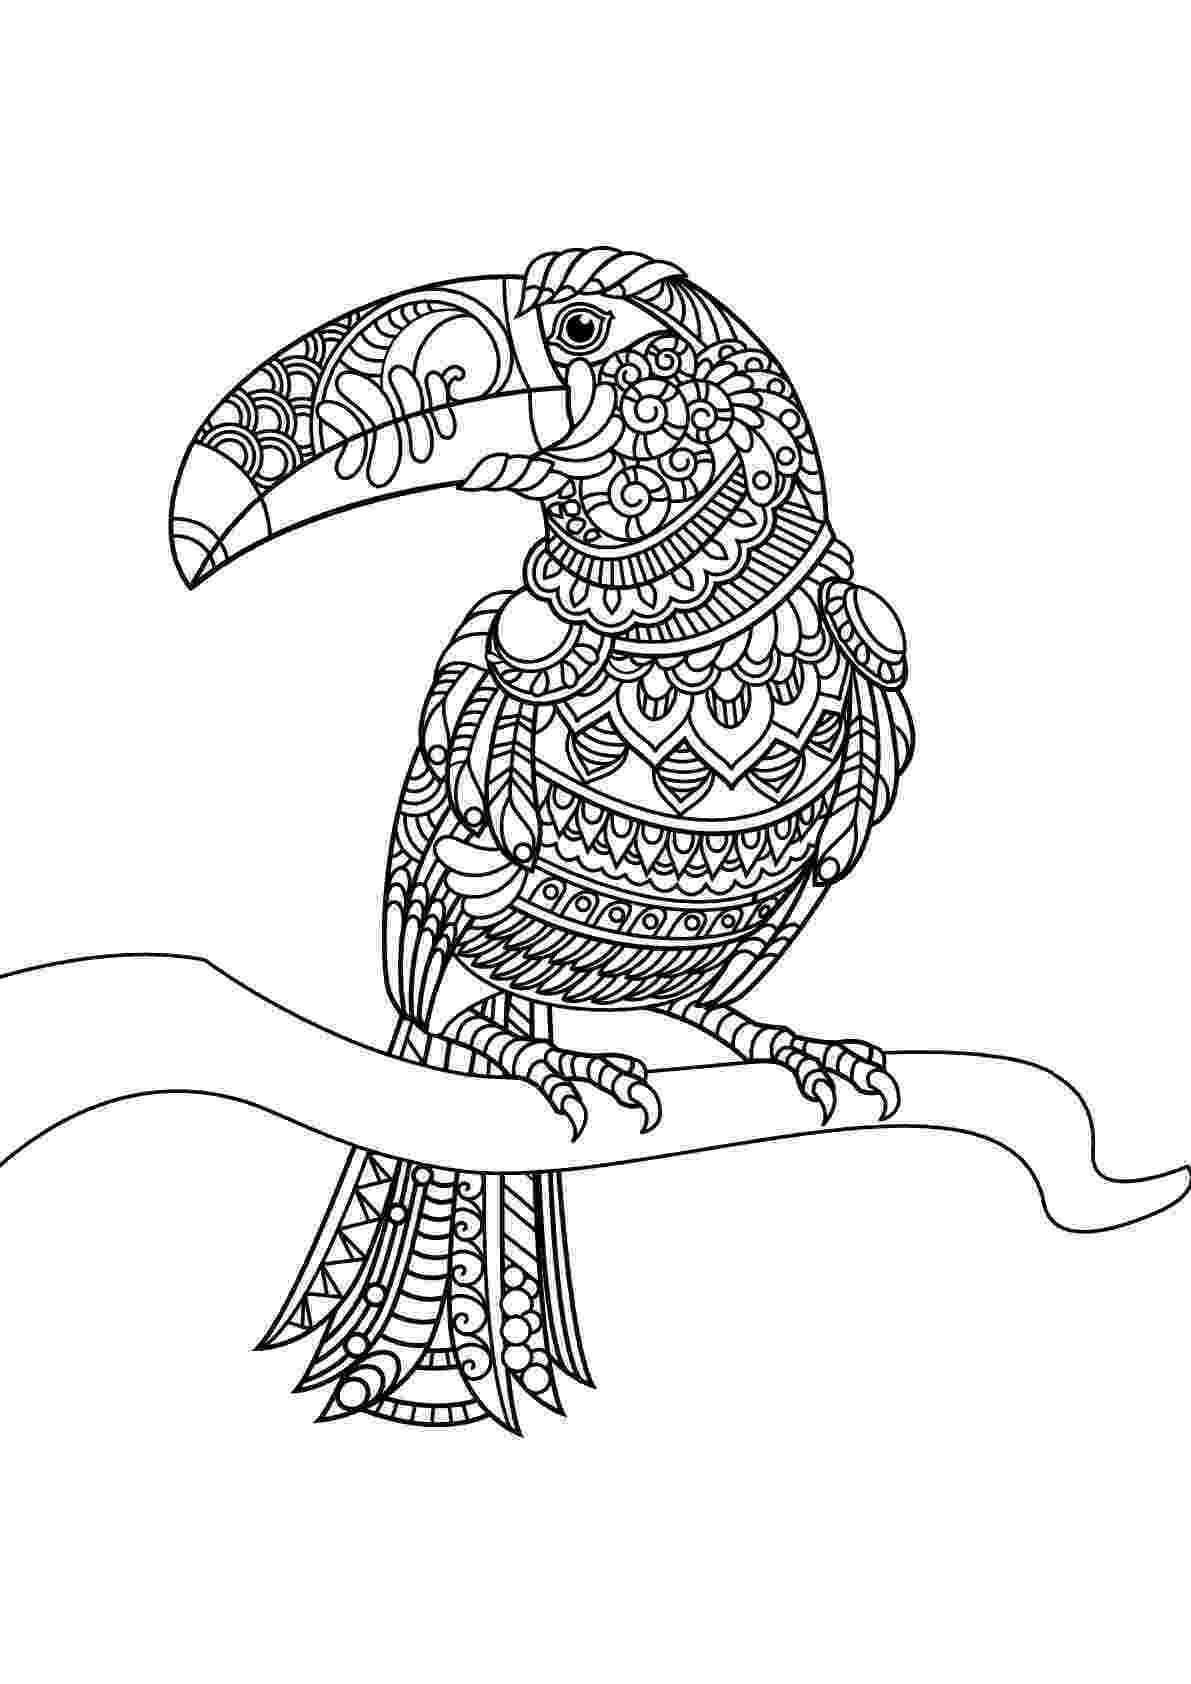 printable bird coloring pages bird coloring pages pages printable bird coloring